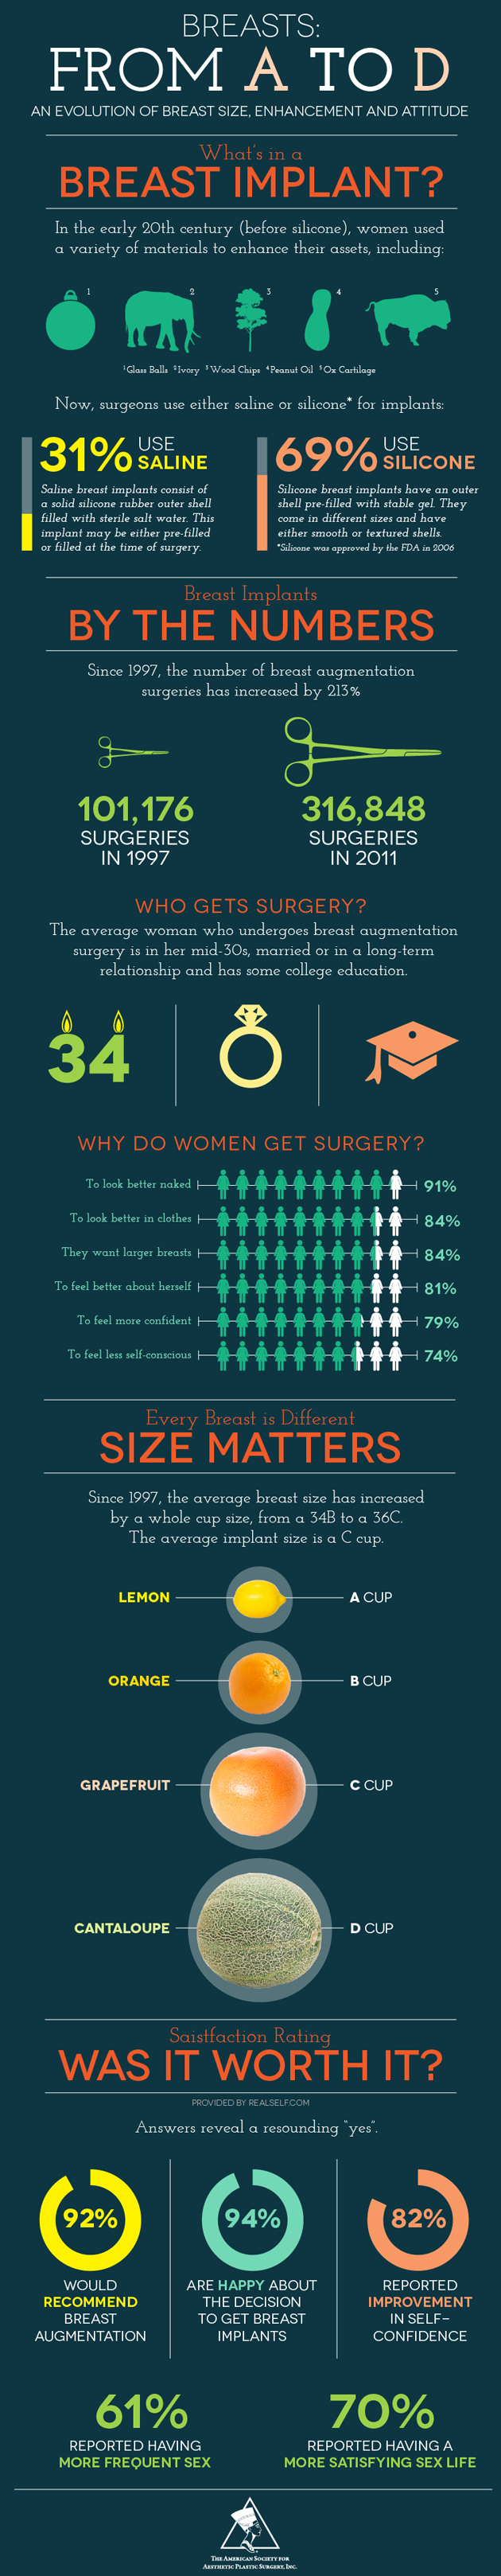 Breast Implant Infographic